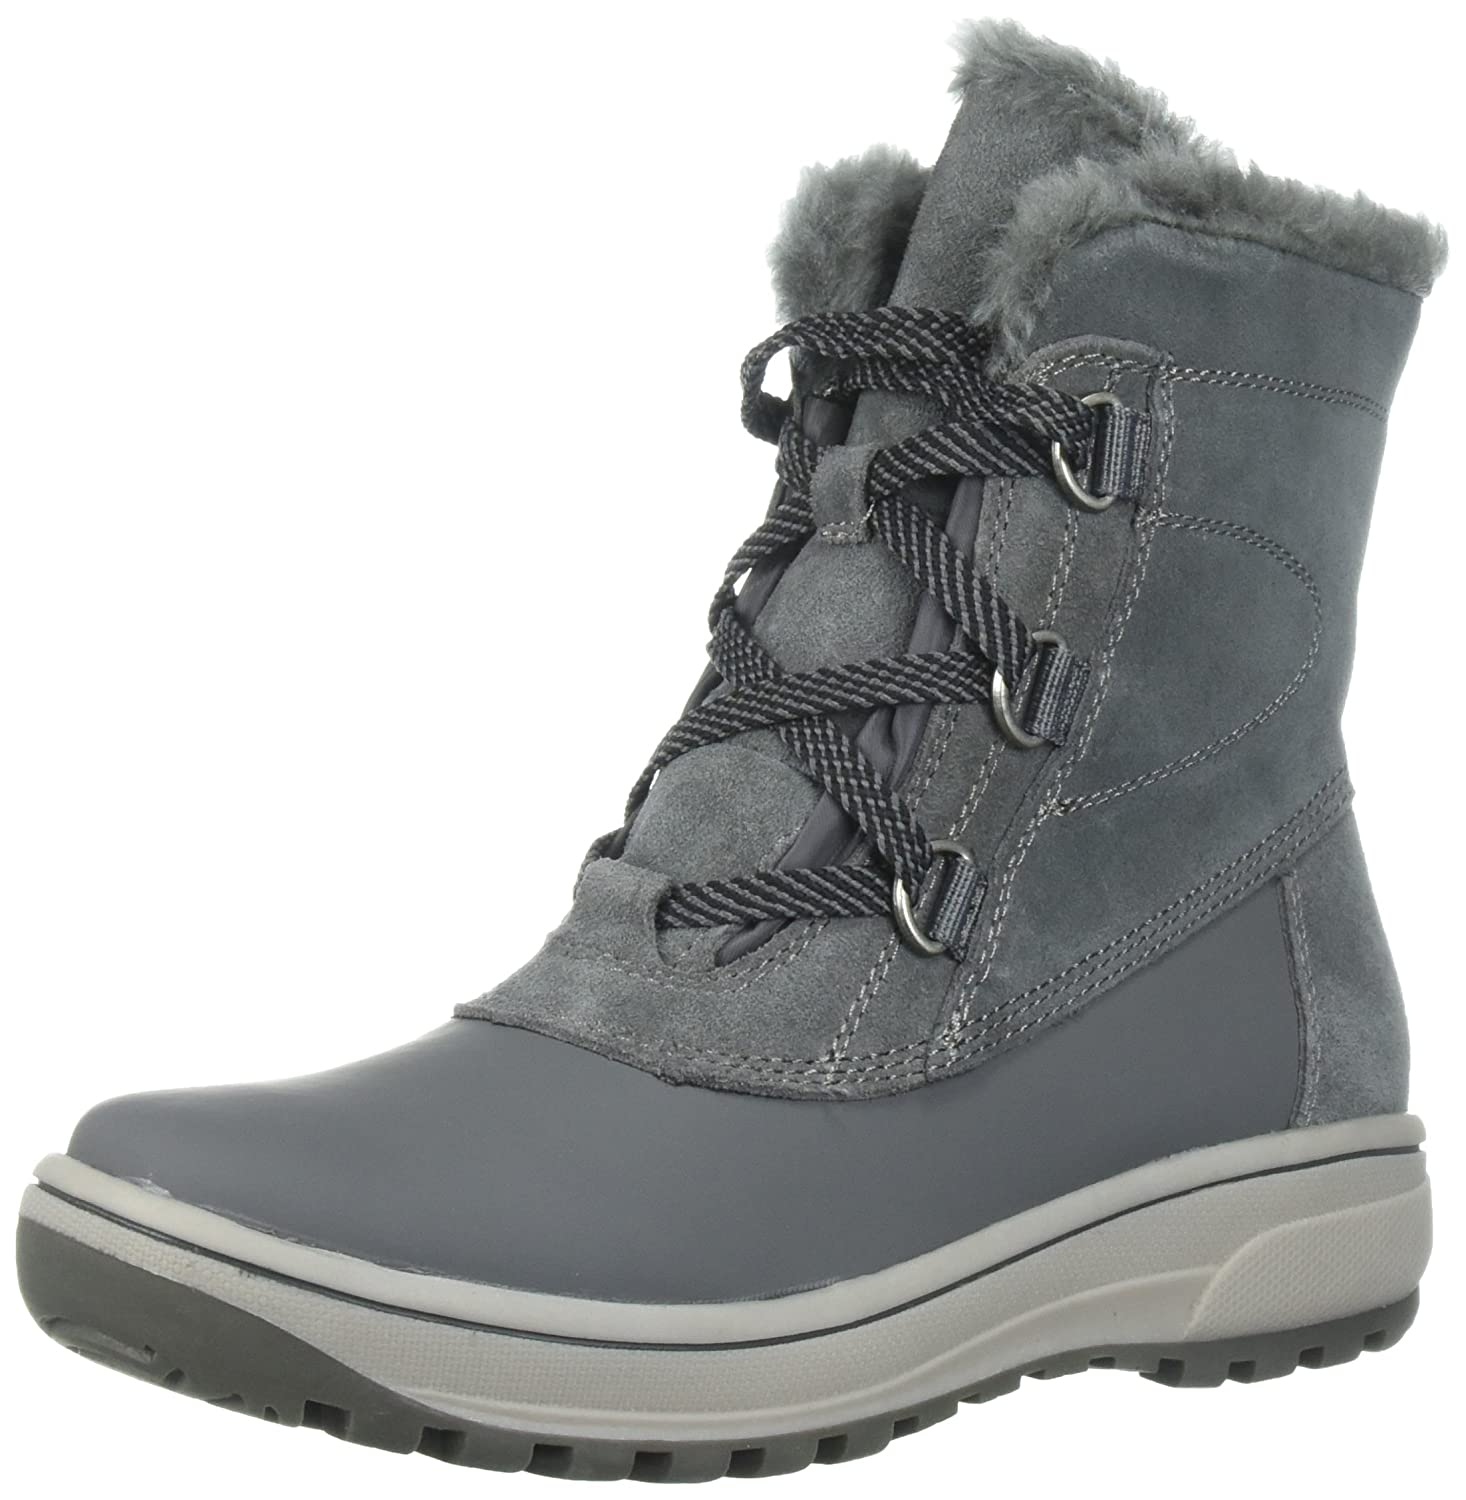 BareTraps Women's Denyce Snow Boot B07196F1LY 5.5 B(M) US|Dk Grey